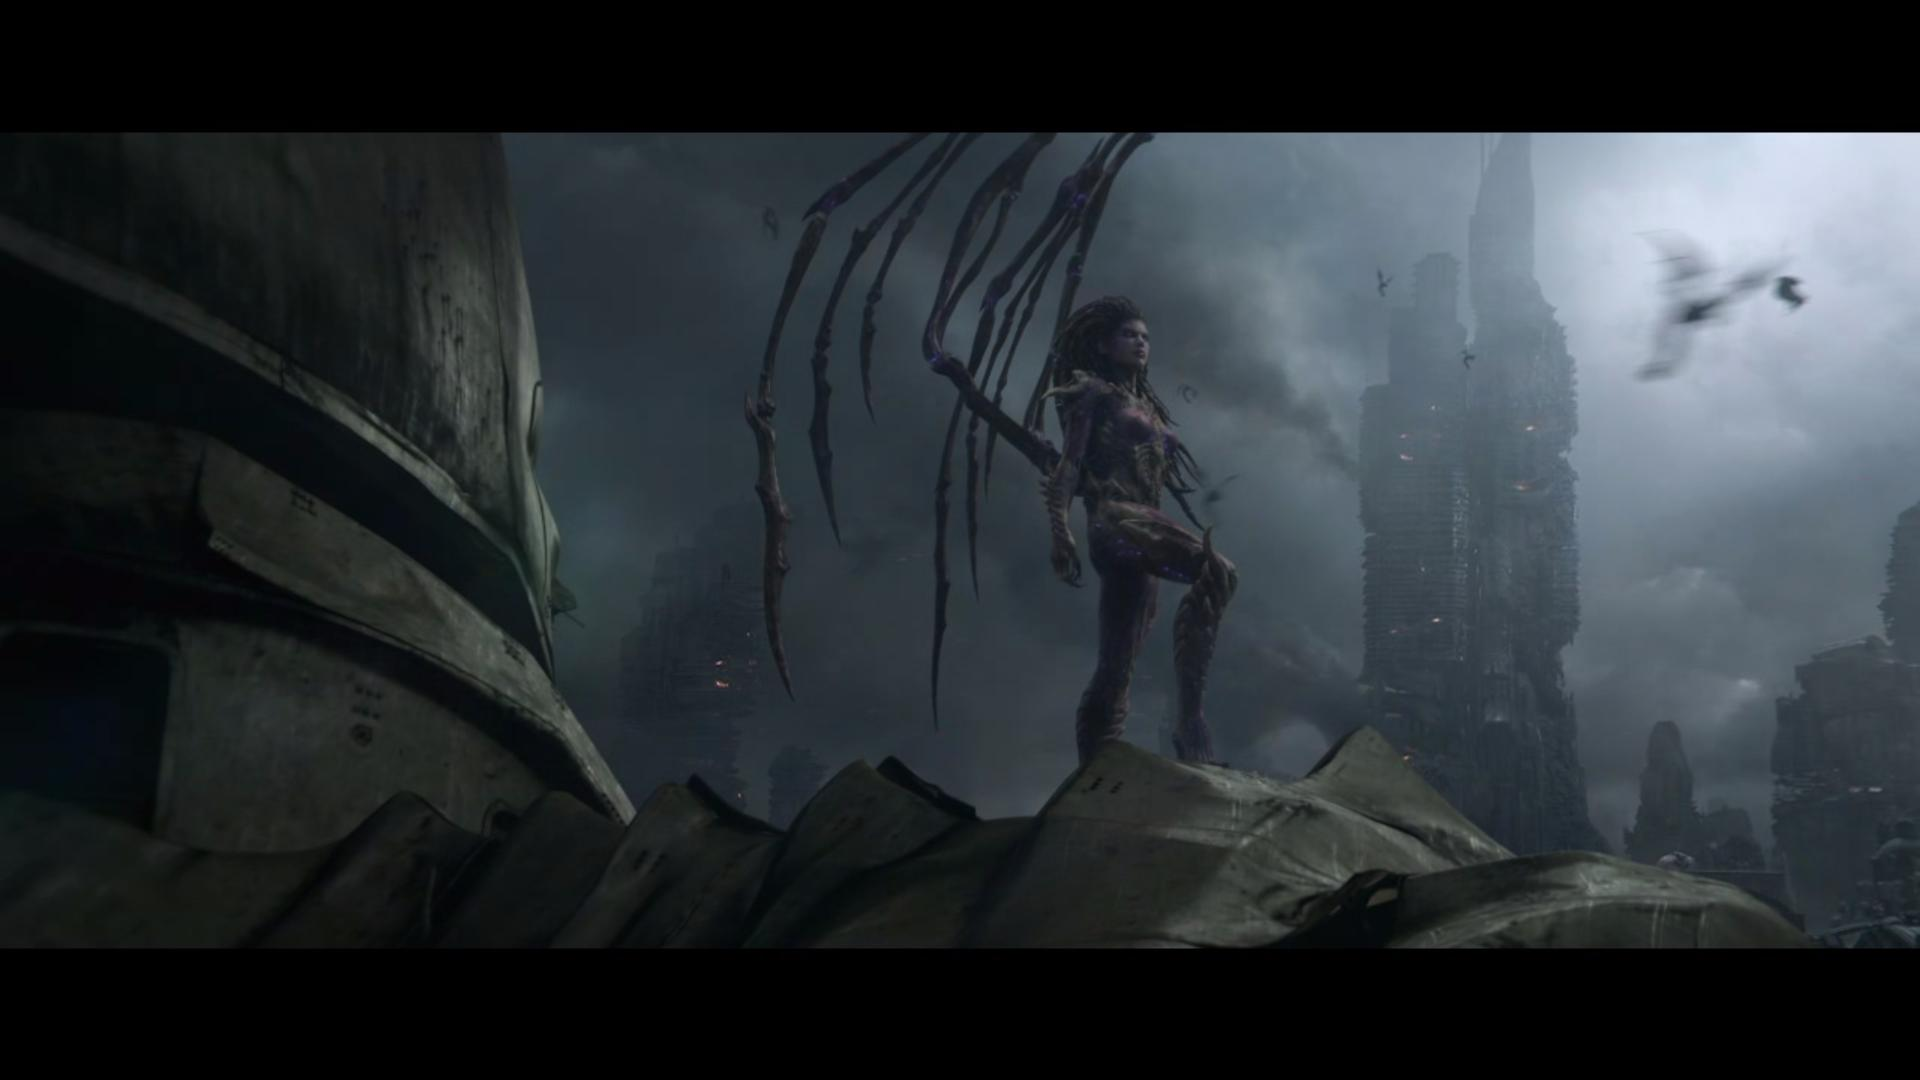 StarCraft II: Heart of the Swarm Benchmarked - NotebookCheck